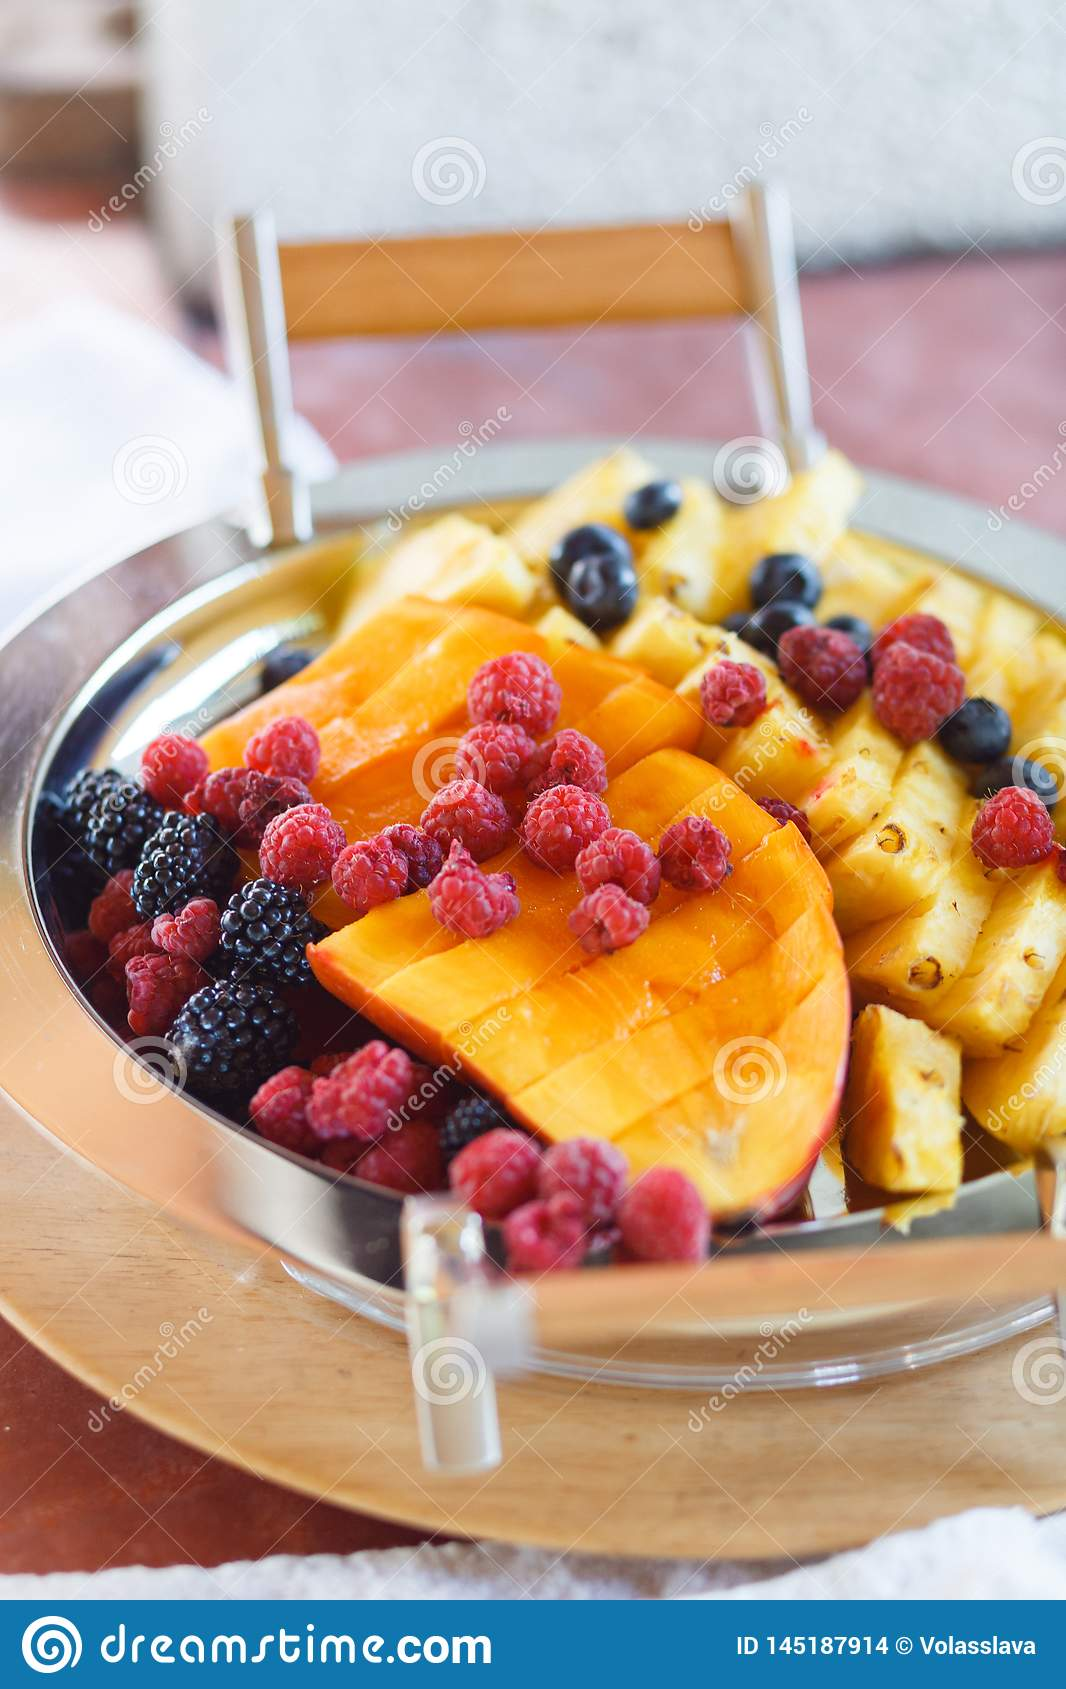 Fruits and berries are on the tray